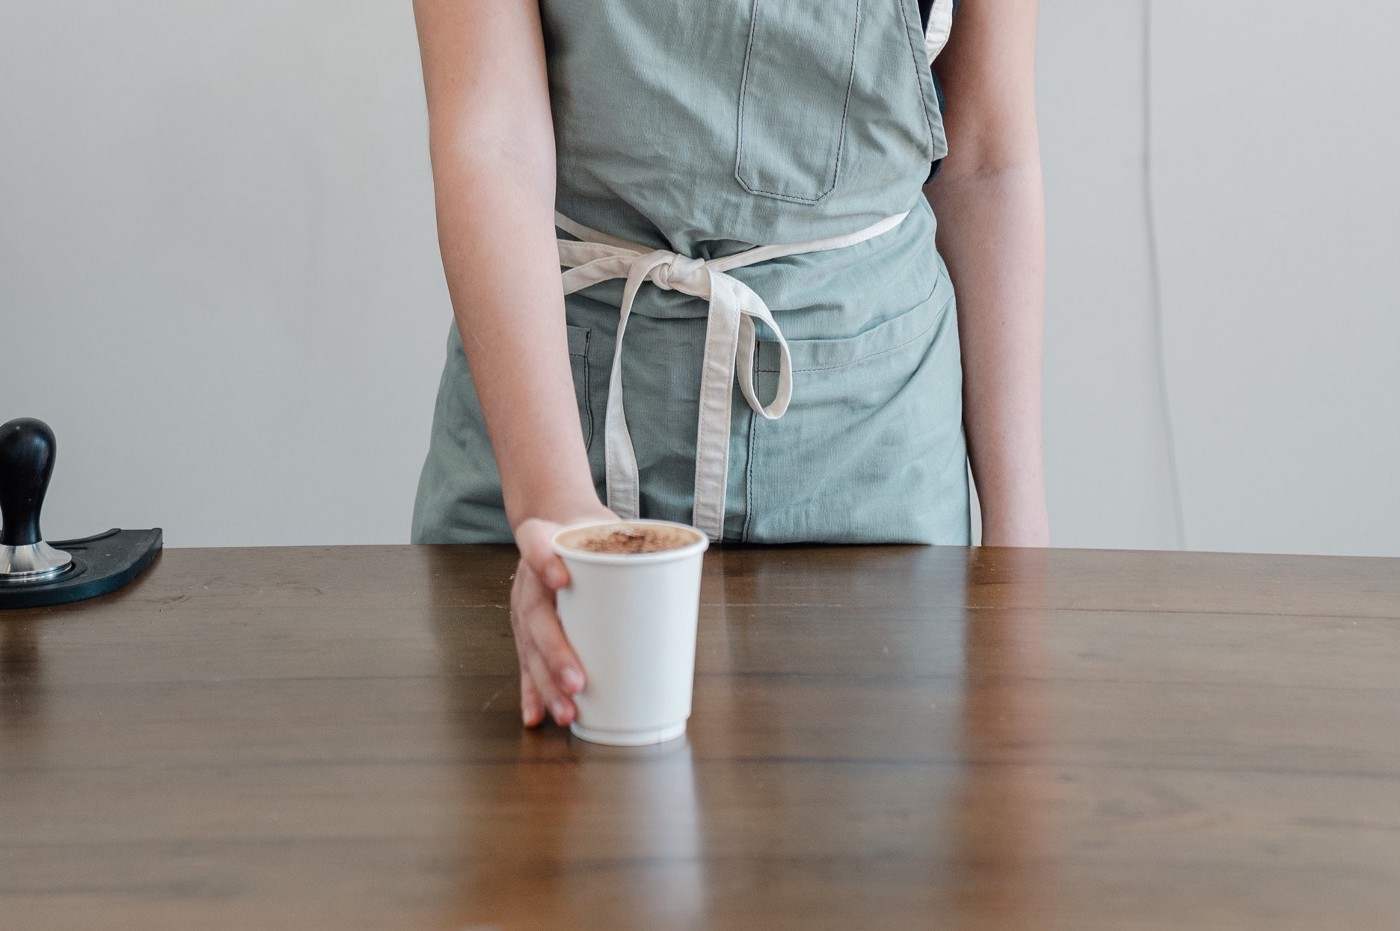 A woman serving a cup of coffee across a counter